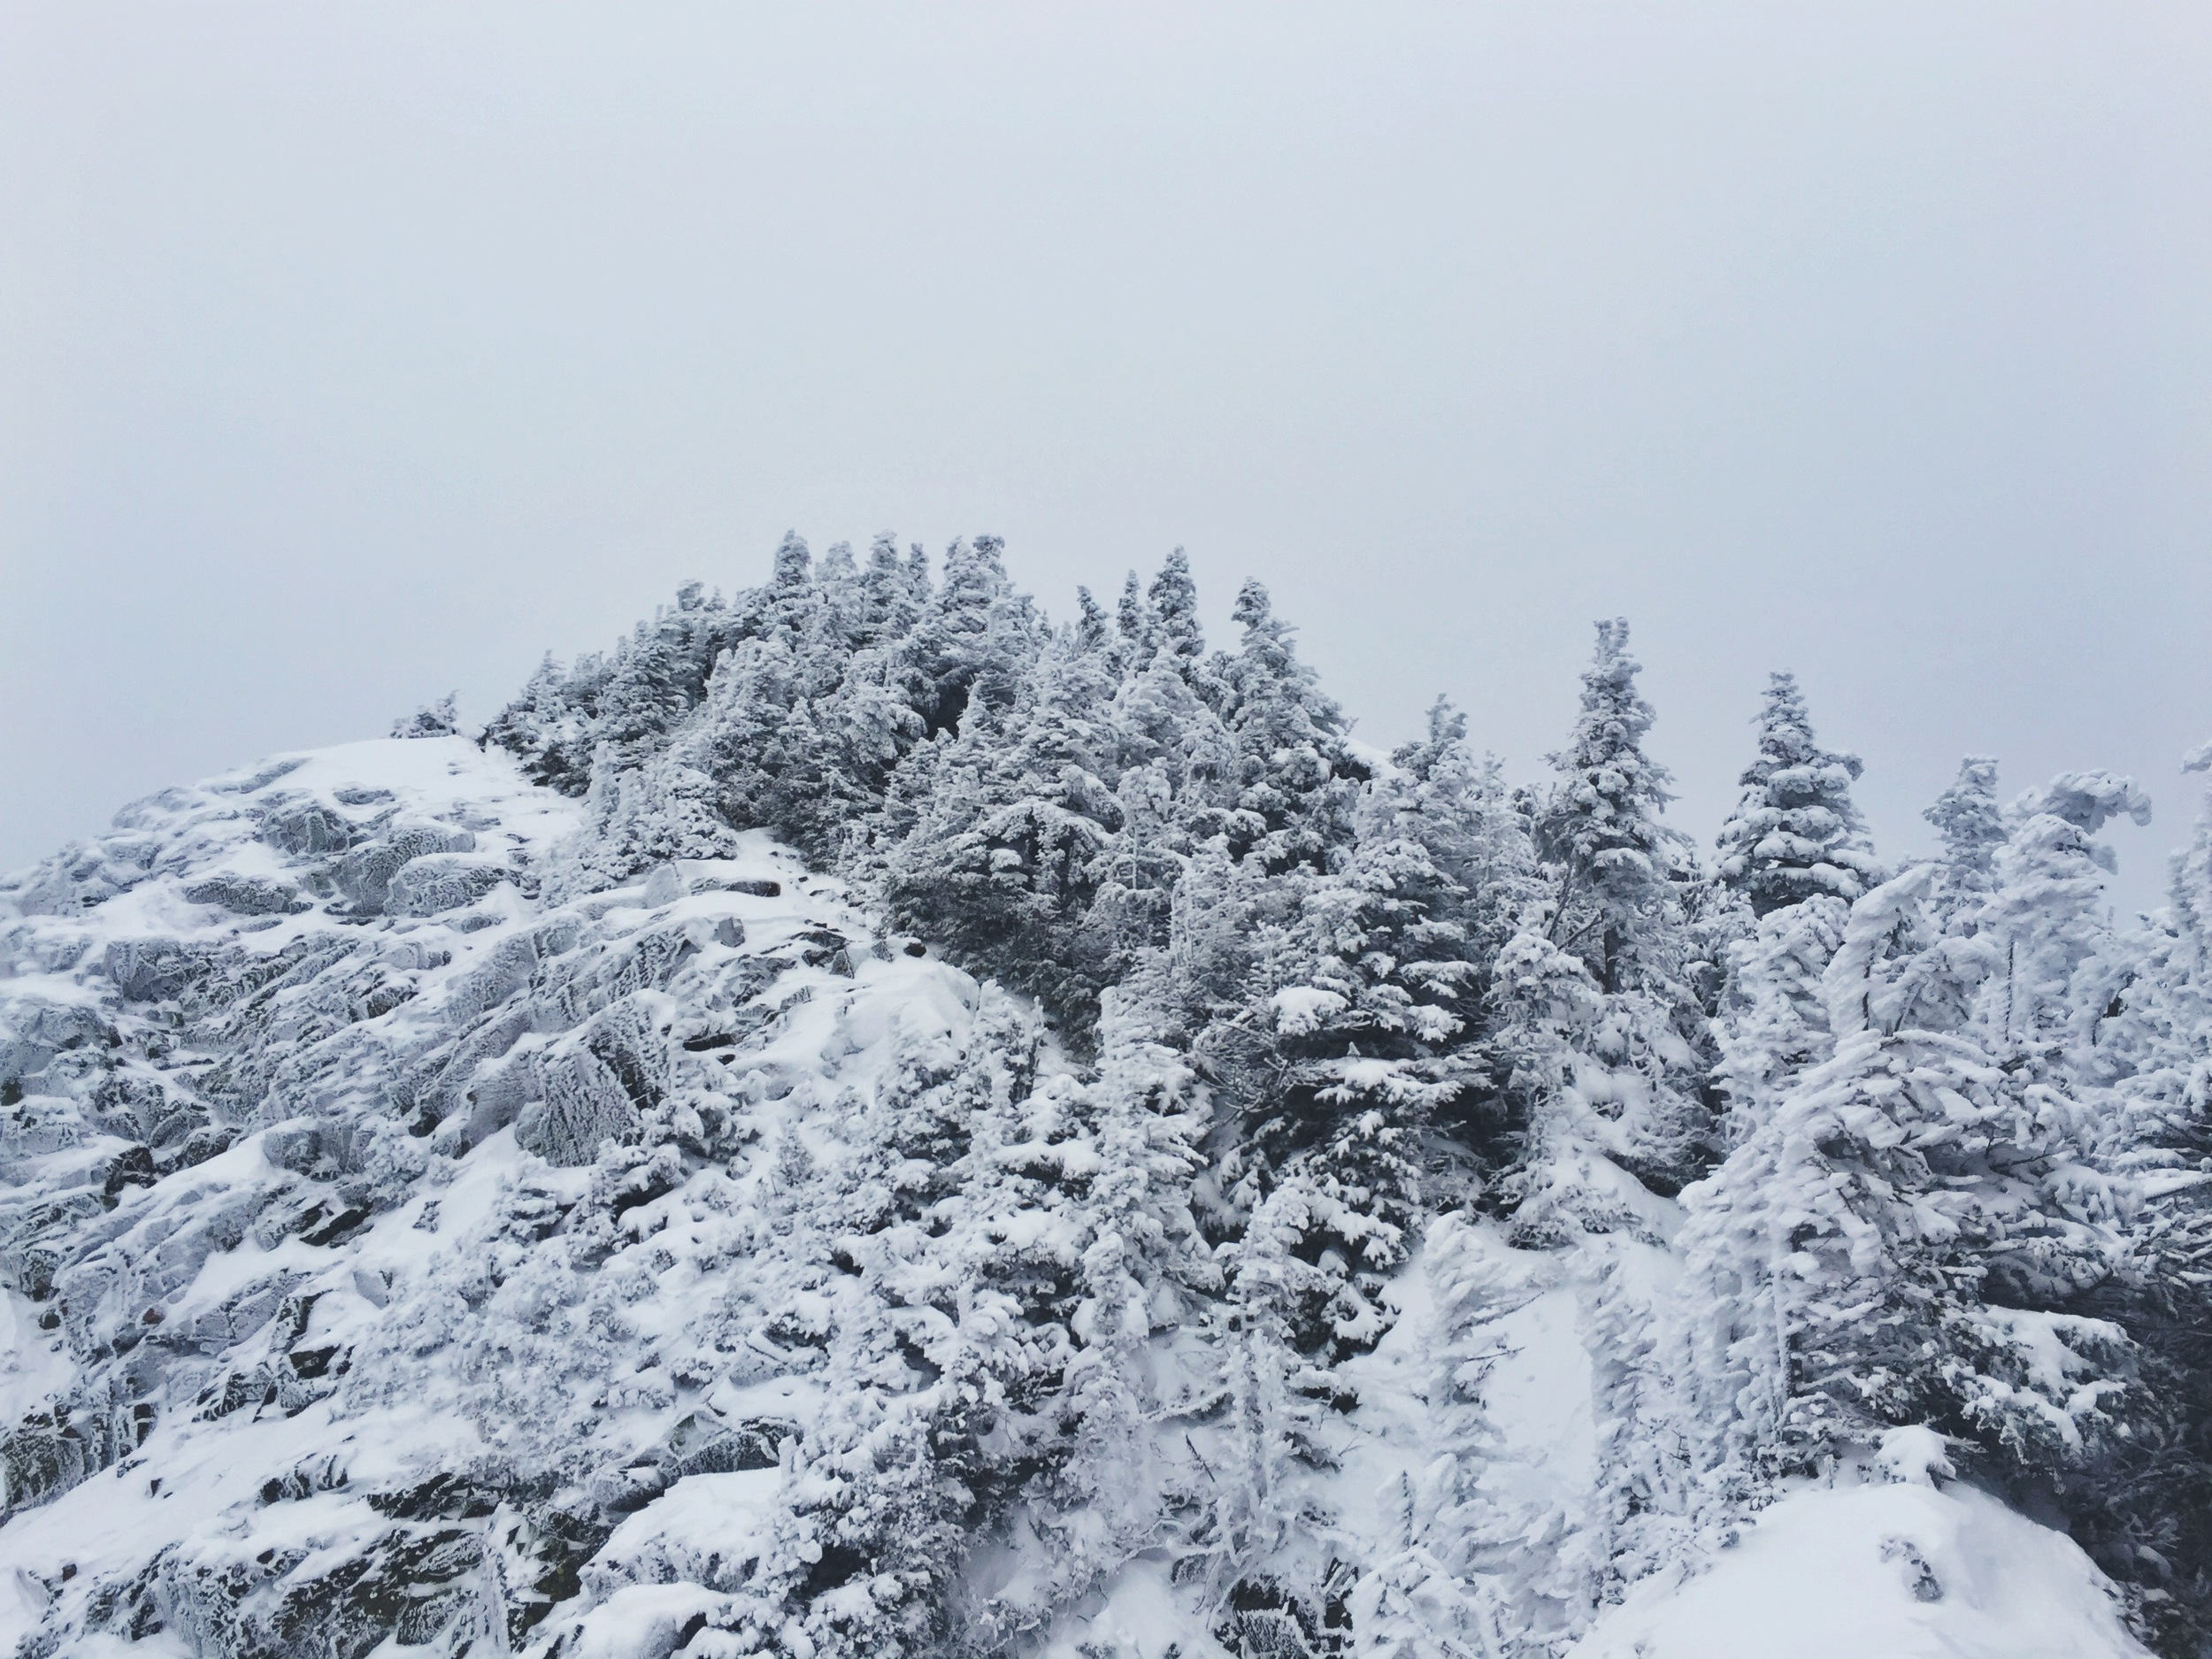 The winter landscape is demanding and beautiful.